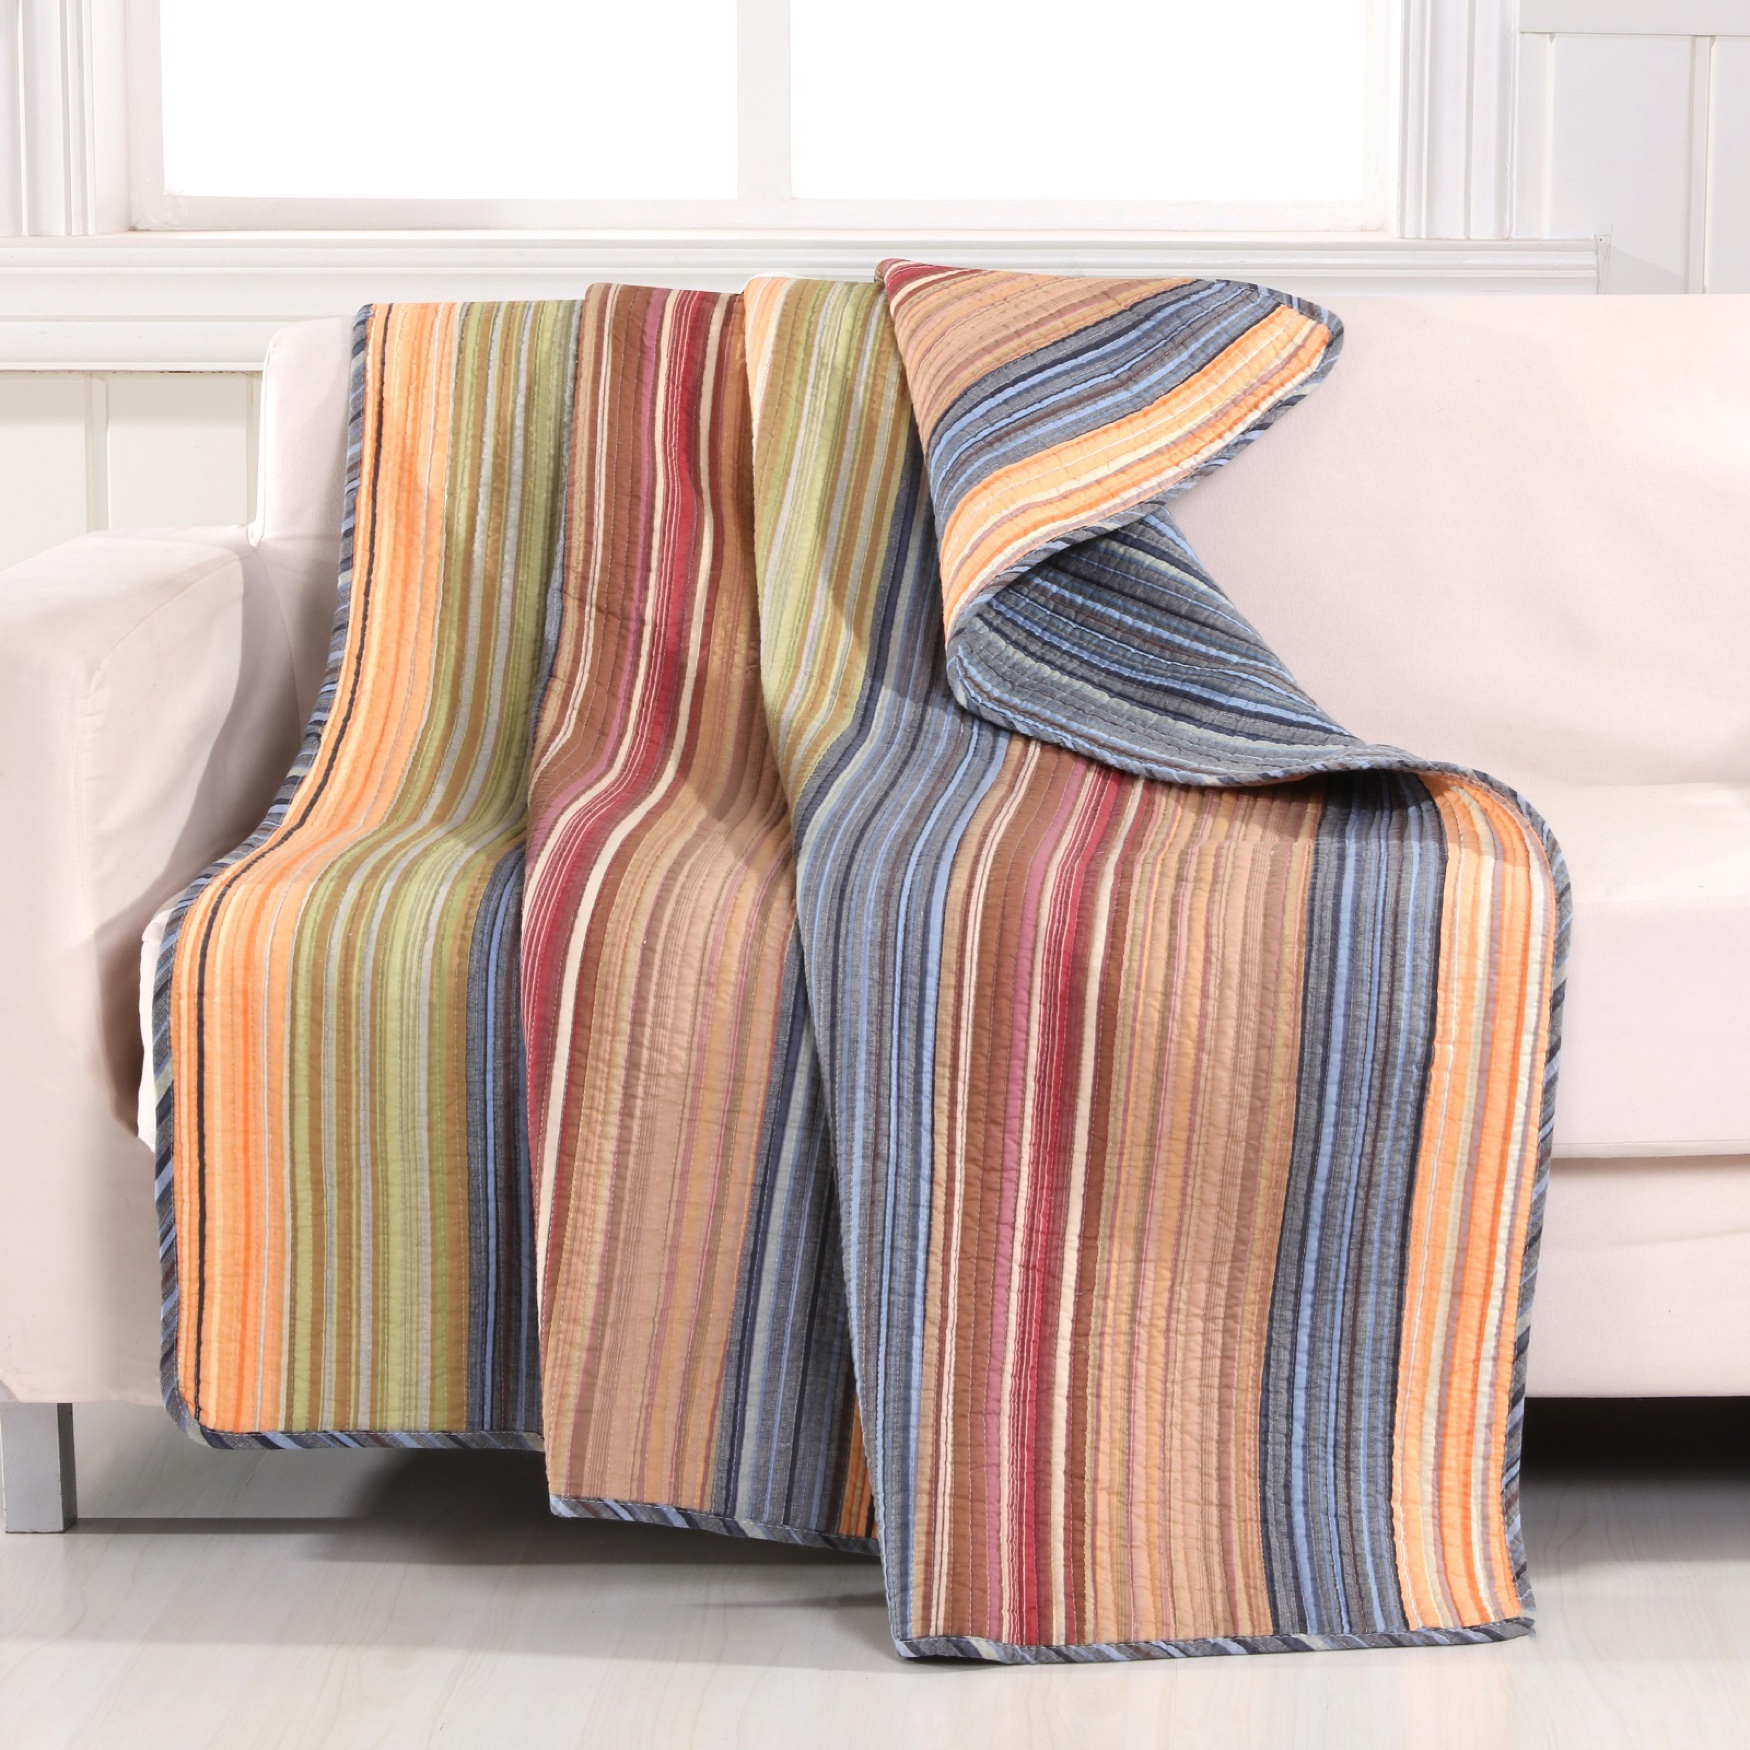 Greenland Home Fashions Katy Quilted Throw Blanket, MULTI